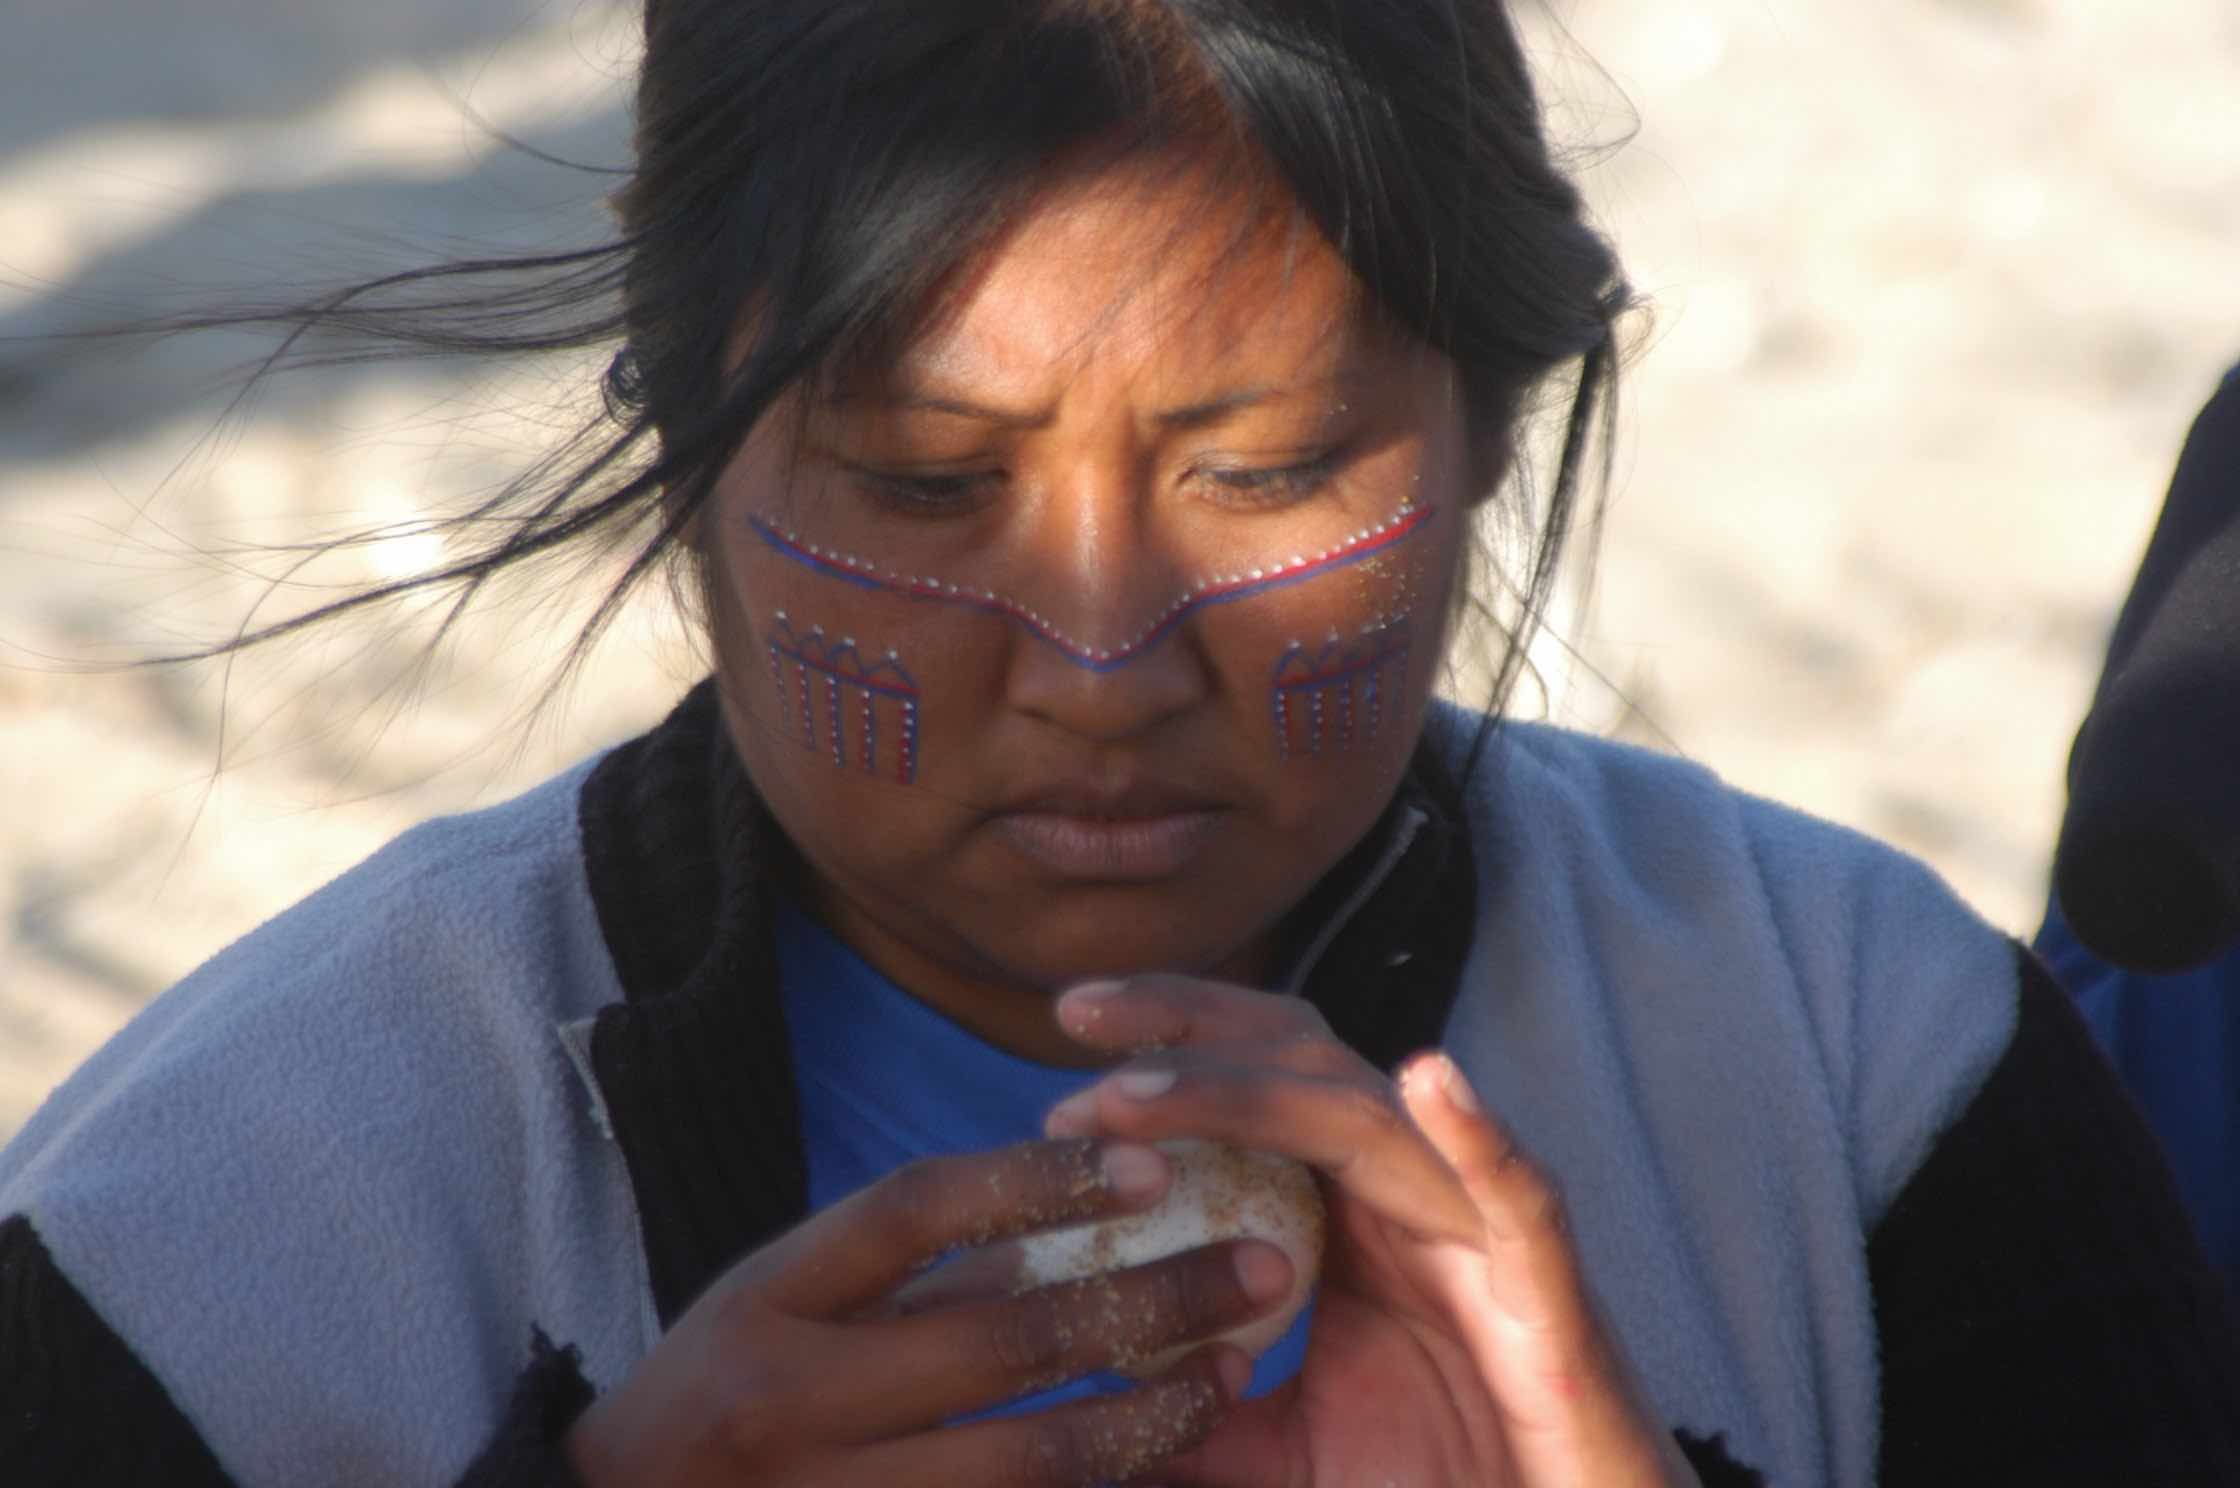 The Seri tribe of Sonora, Mexico, is one indigenous culture that maintains its strong traditional, cultural ties to sea turtles. A four-day ceremony celebrating the ancient leatherback turtle is one of the Seris' most sacred traditions. Since 1981, the Seris had been unable to perform this ceremony in their home community, due to declines in the leatherback population. Mayra Olivia Estrella Astorga (at right) is one of five Seris who, in 2006, traveled across the Gulf of California to the Baja California Sur peninsula to perform the traditional ceremony with leatherback hatchlings. Ancient cave paintings—including illustrations of turtles—found near Loreto in Baja California Sur were likely created by Seri ancestors more than 750 years ago. © Ocean Revolution